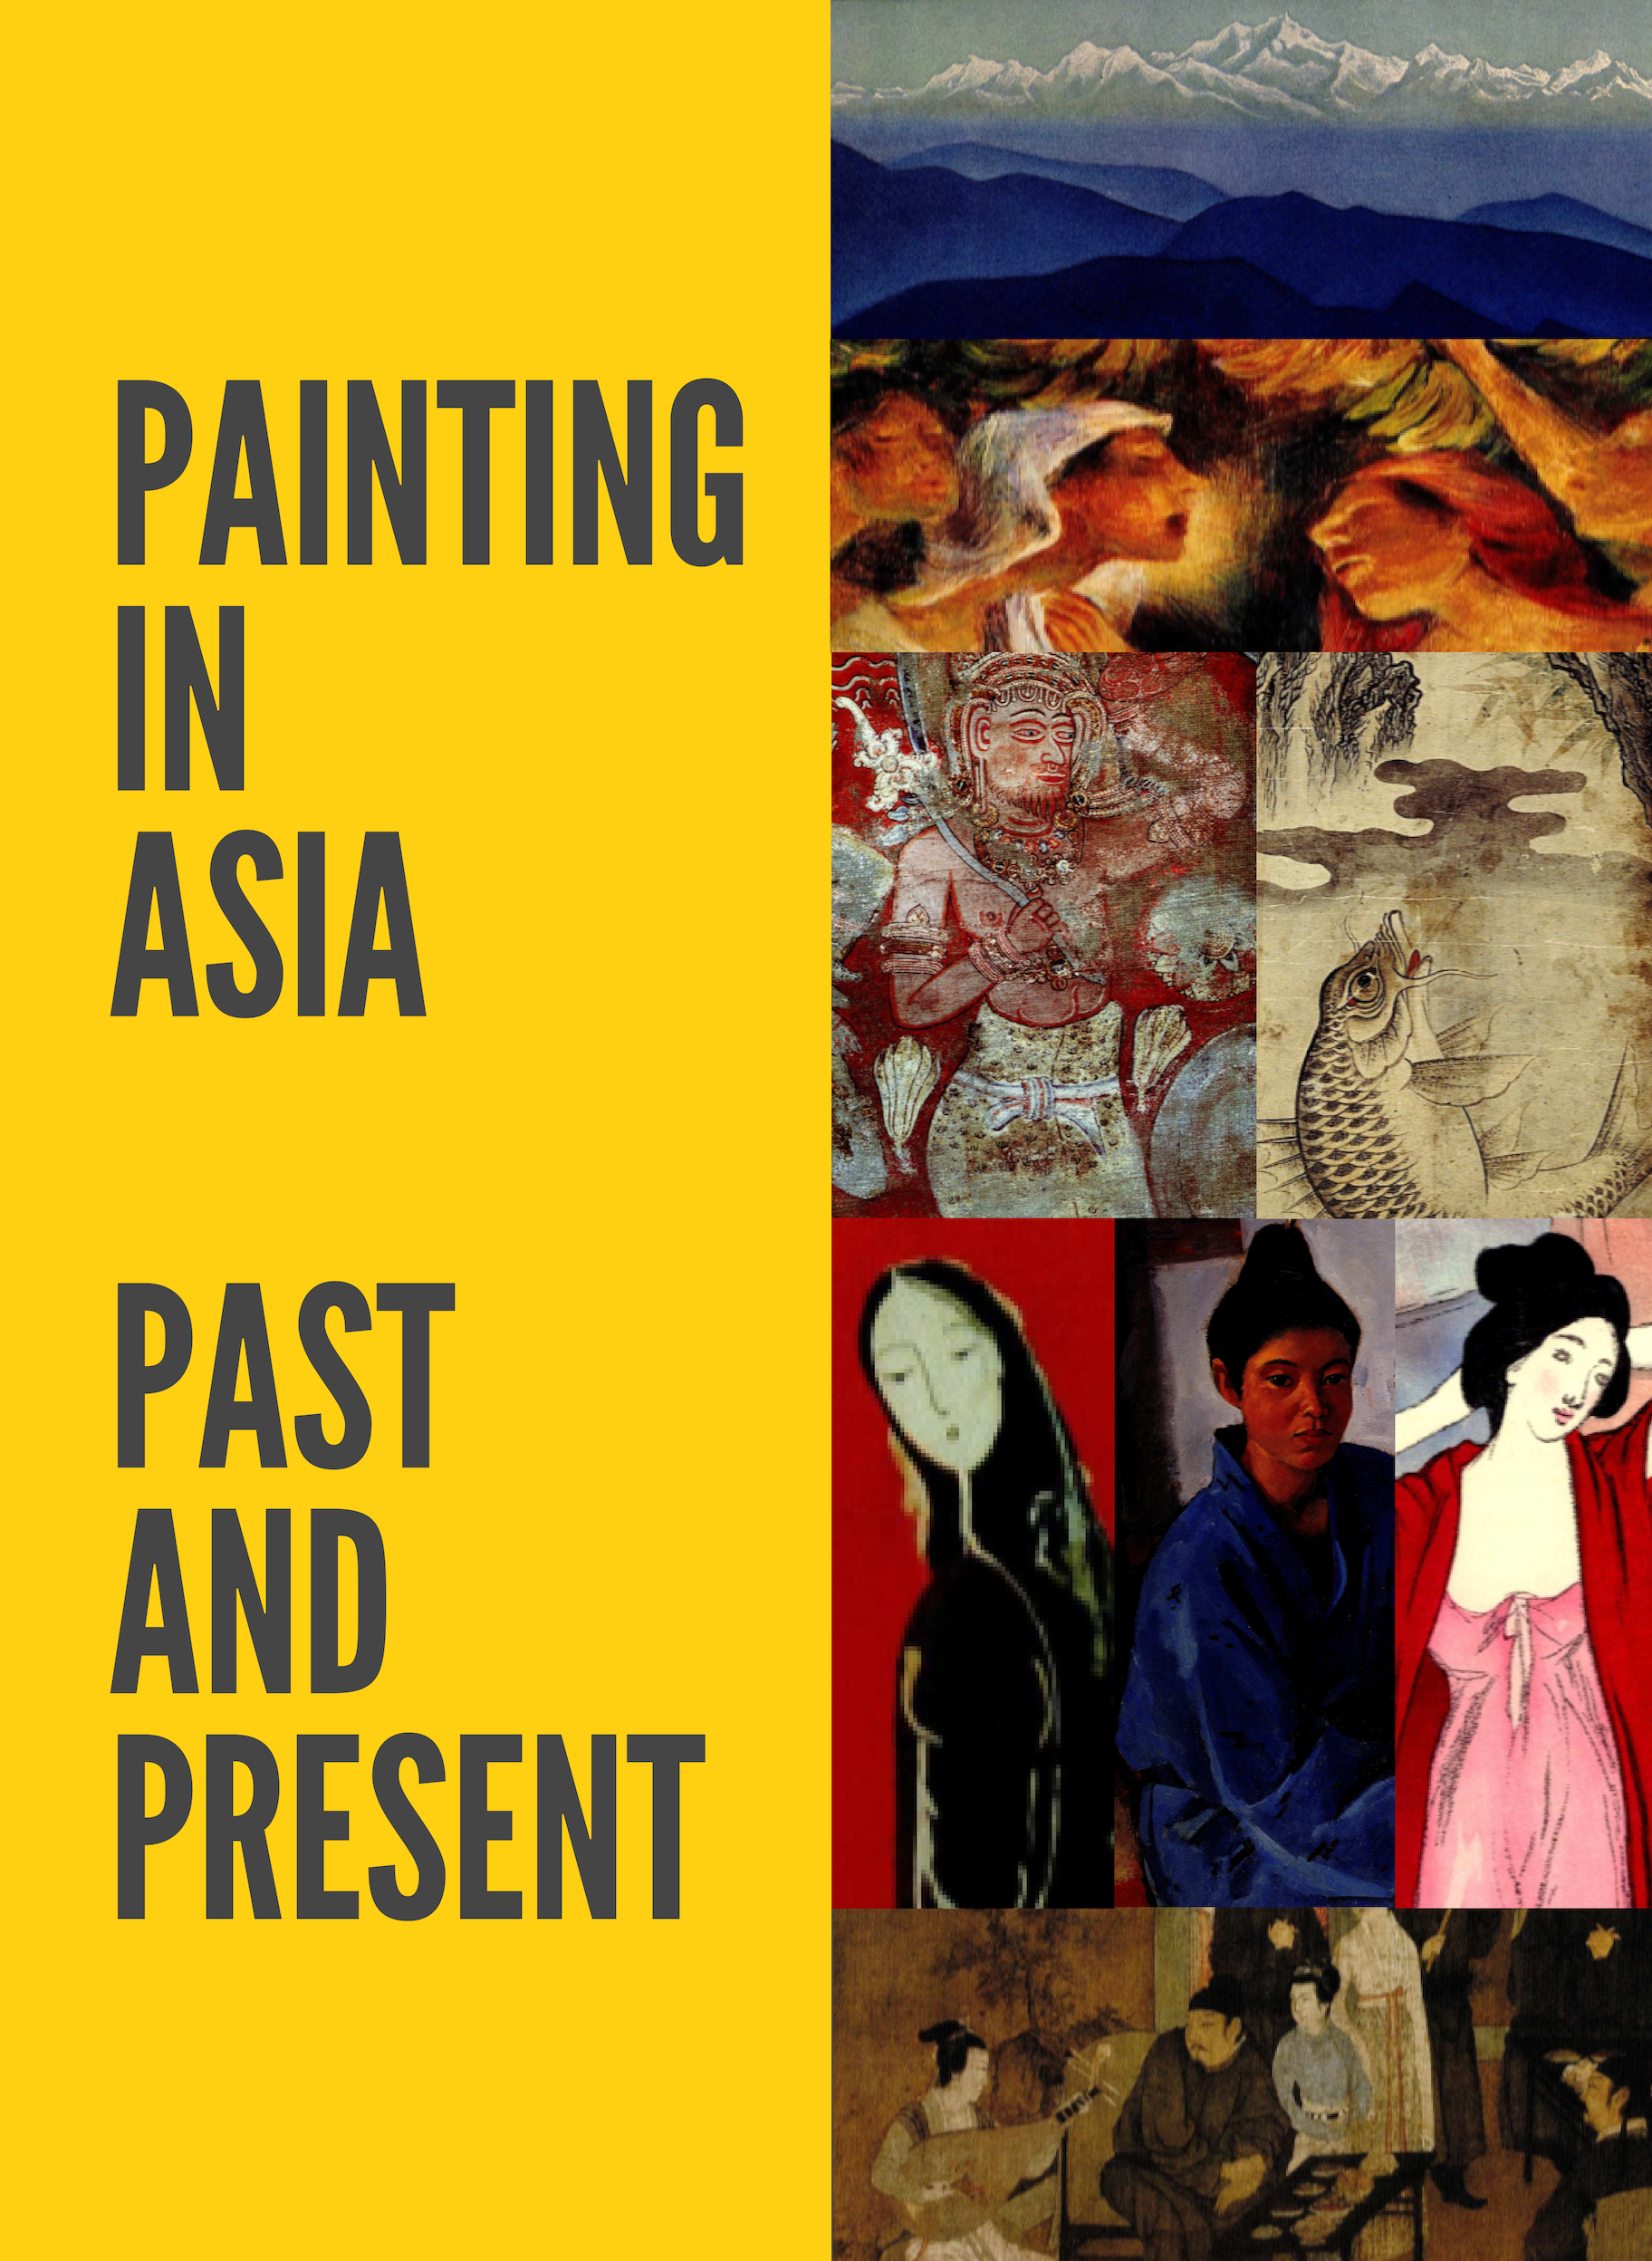 Painting in Asia. Past and Present